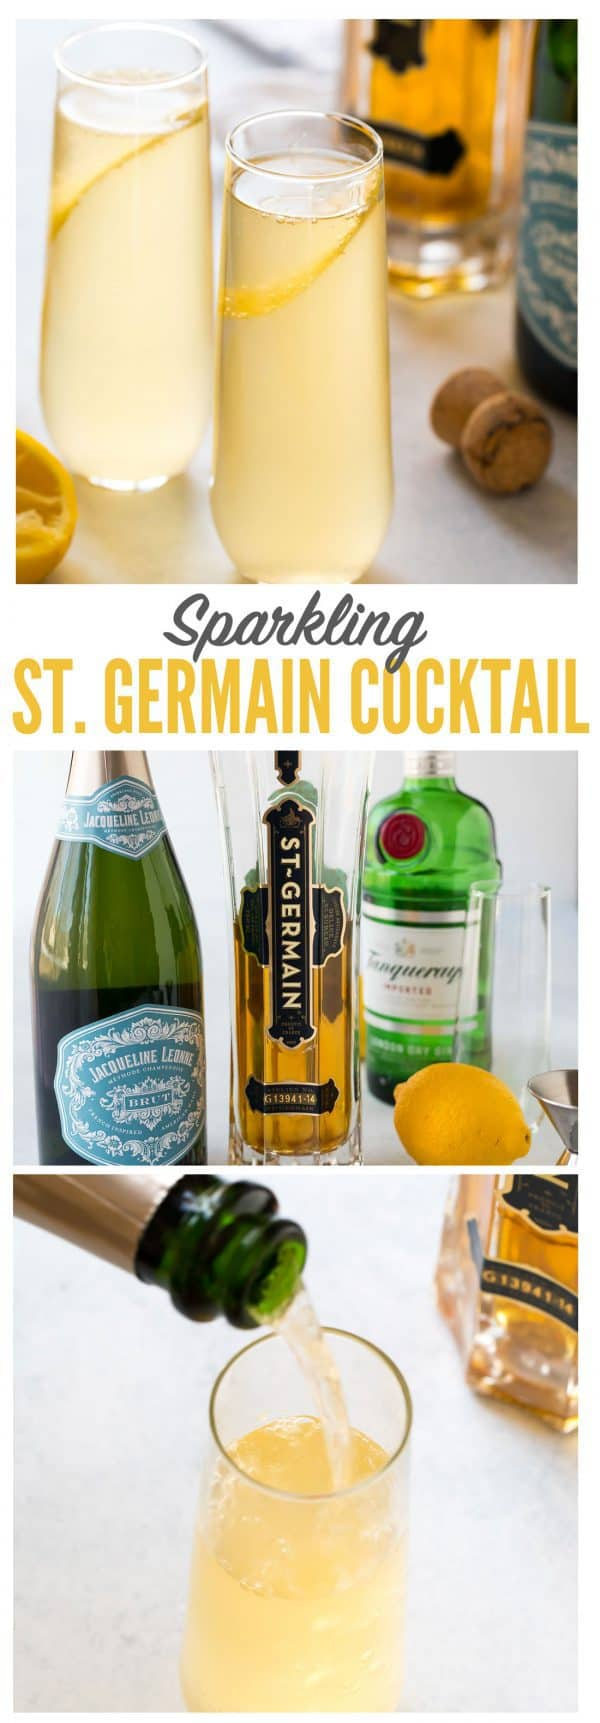 Sparkling St. Germain Cocktail with gin or vodka, fresh lemon, and topped with Prosecco or champagne. Easy and perfect for brunch, a special date night in, and parties!